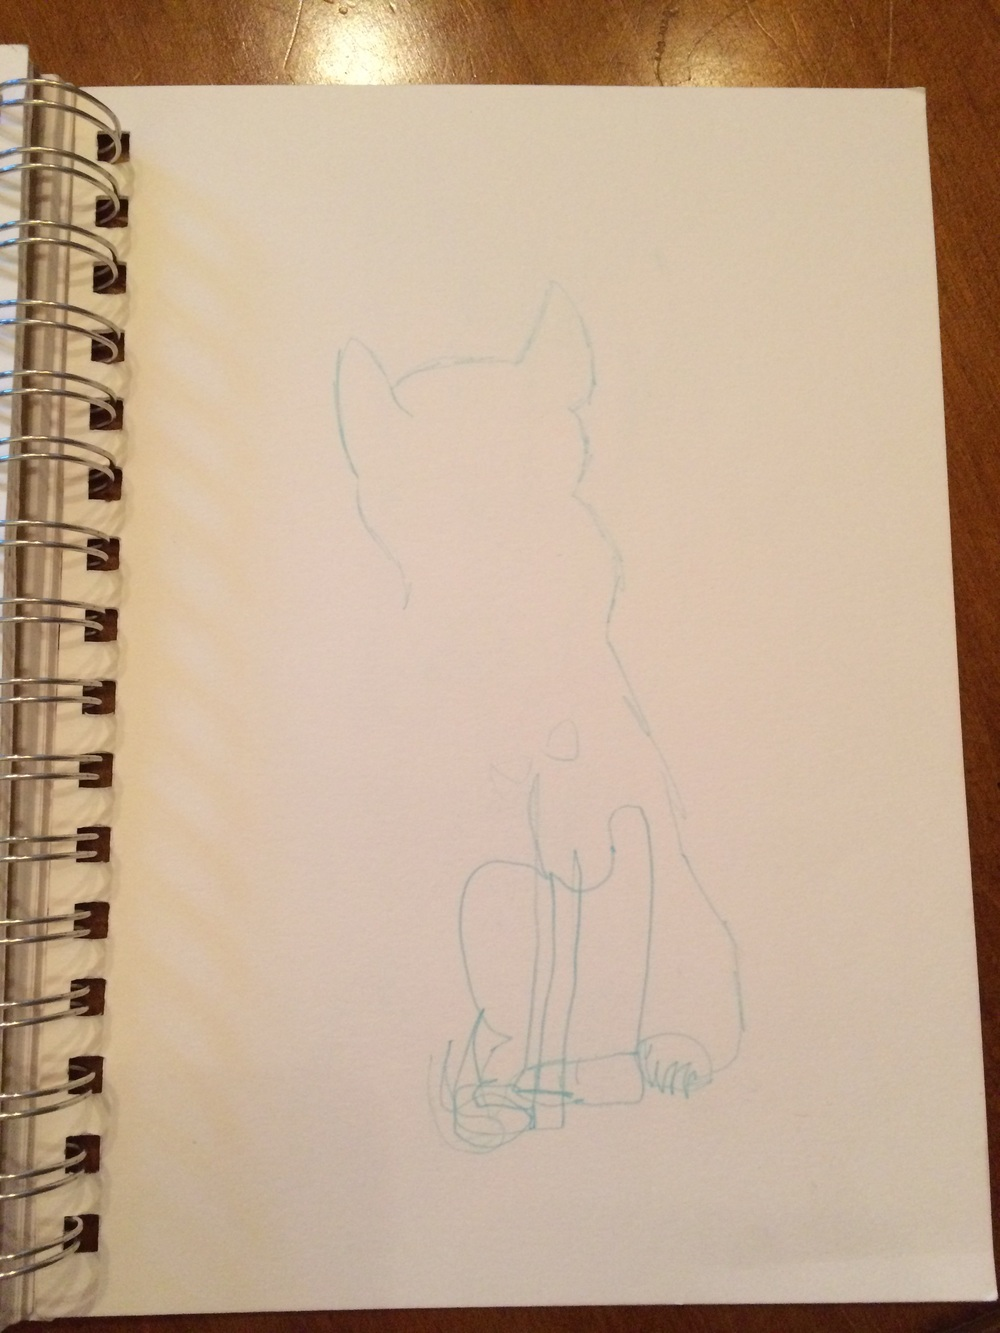 Claire's blind contour of the Bastet statue in 45 seconds.